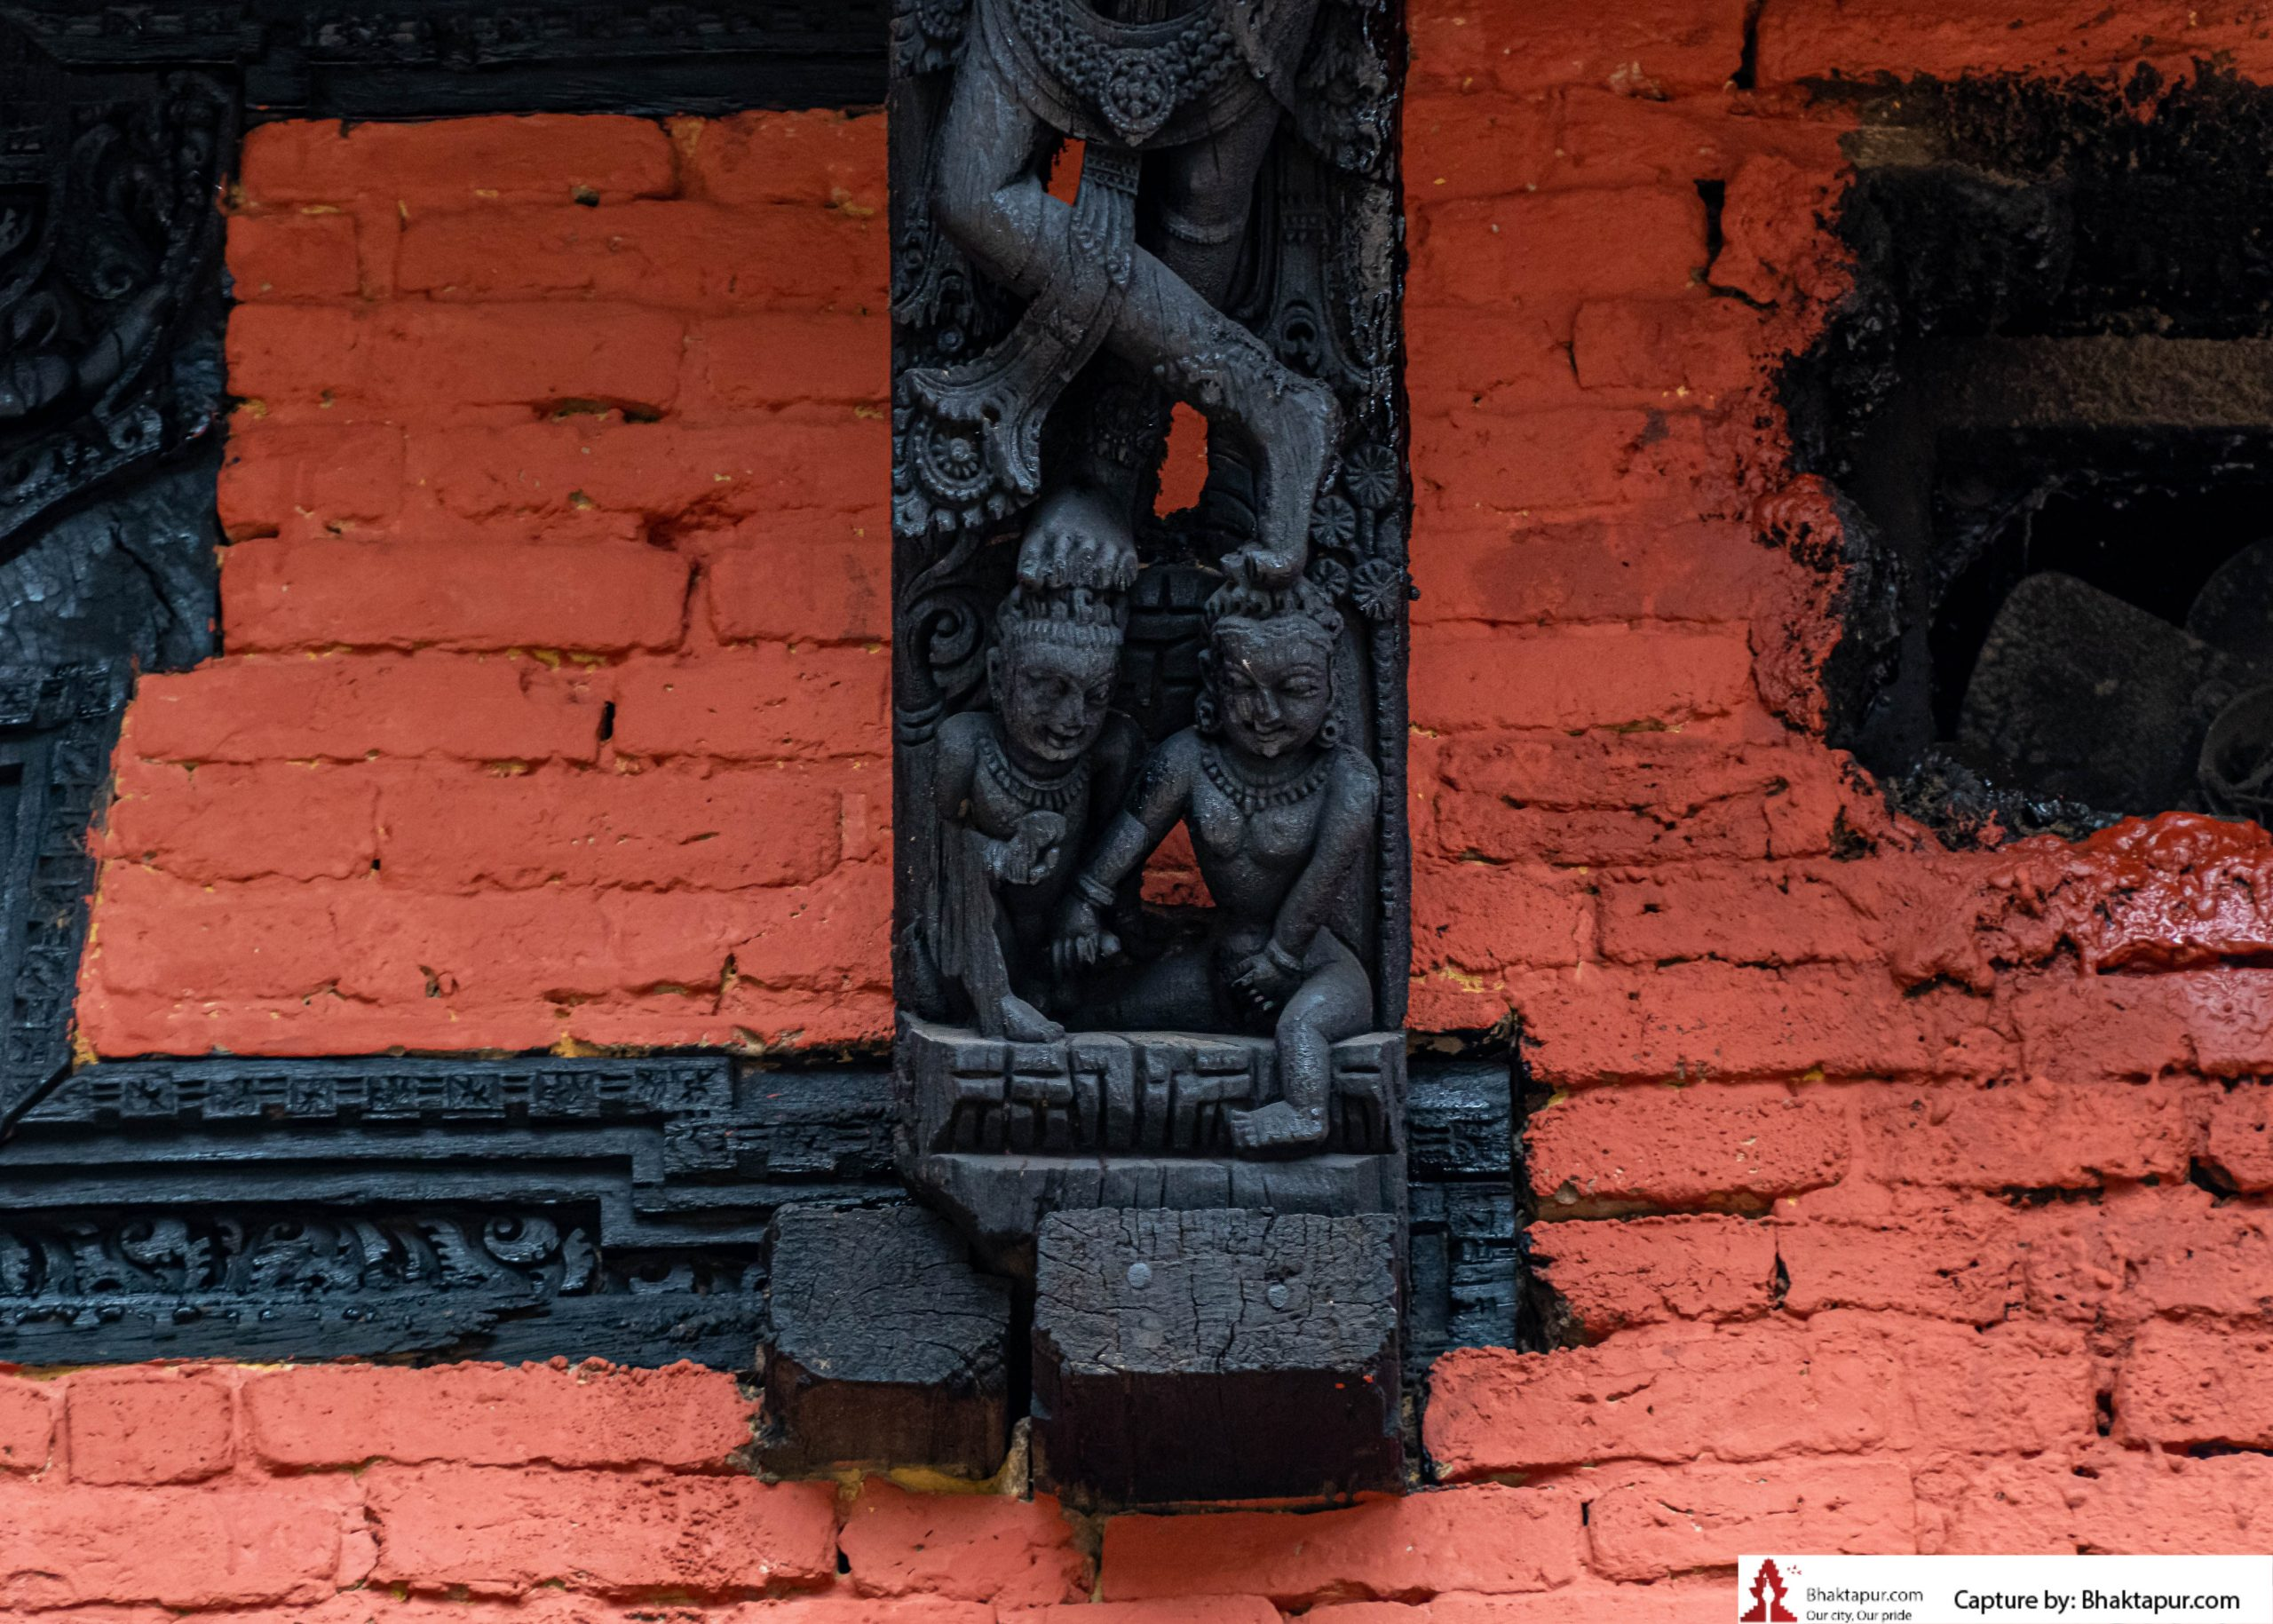 https://www.bhaktapur.com/wp-content/uploads/2021/08/erotic-carving-69-of-137-scaled.jpg